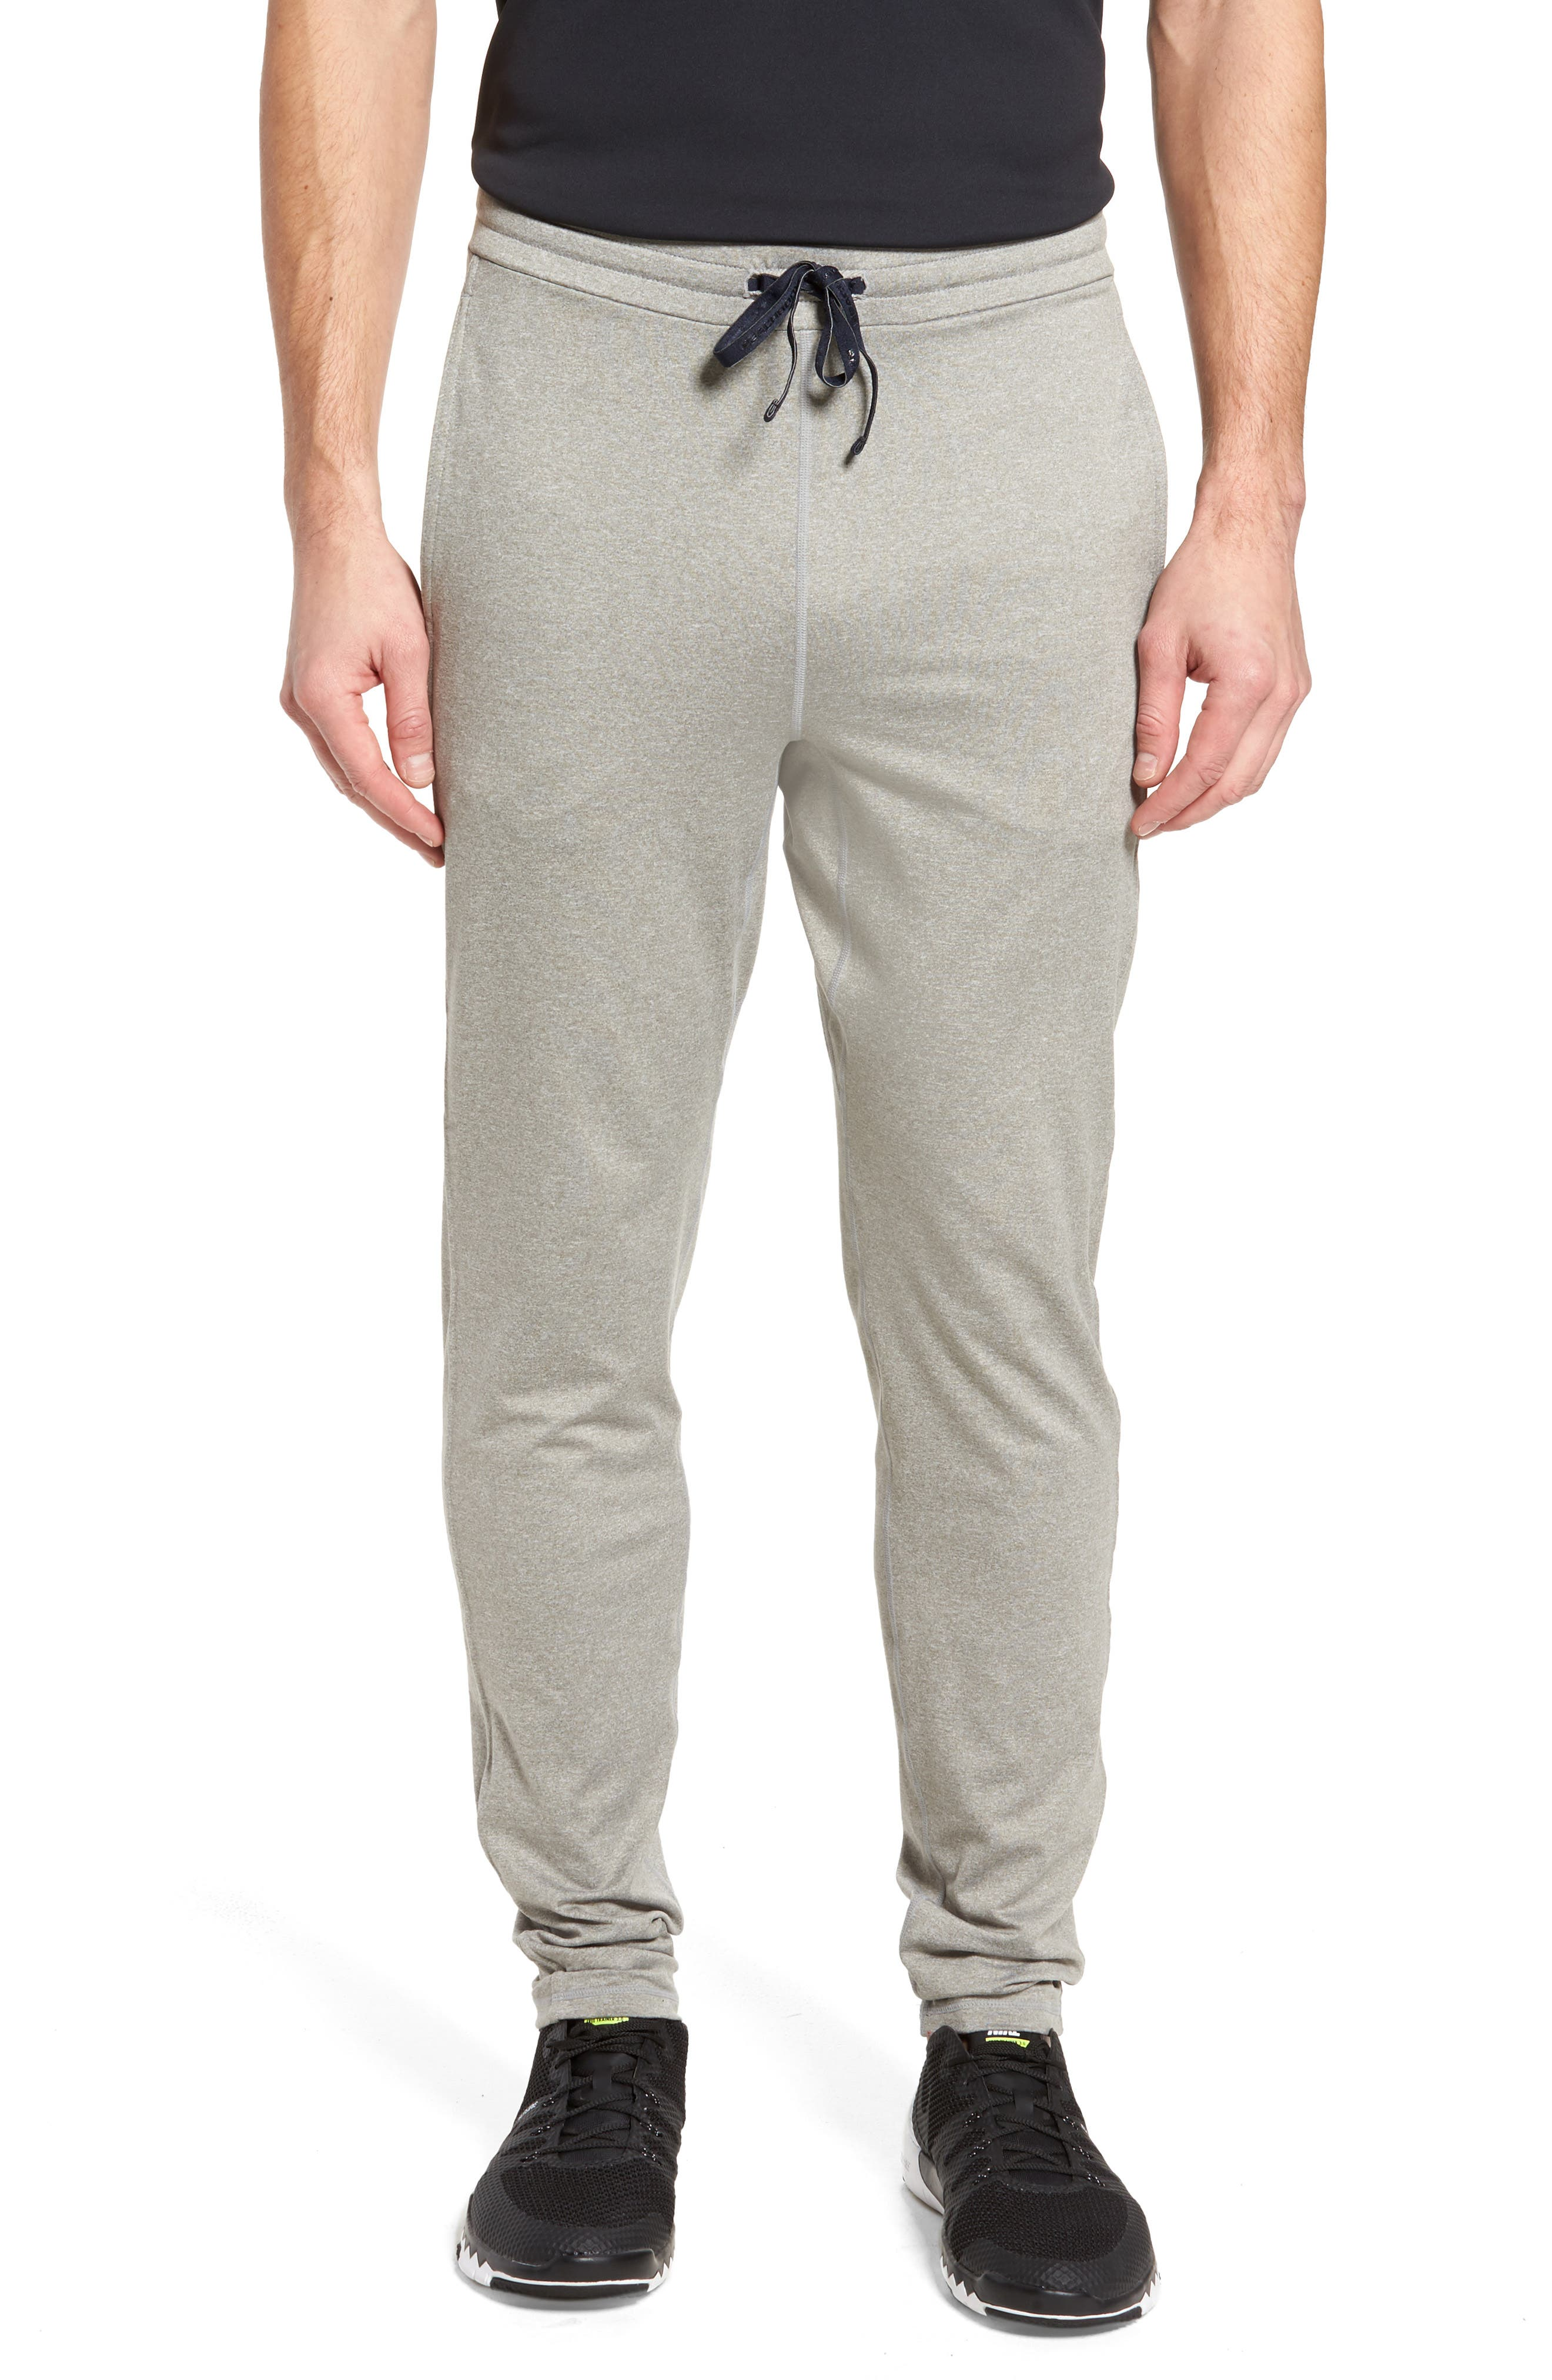 Go-To Slim Athletic Pants,                         Main,                         color, Grey Heather